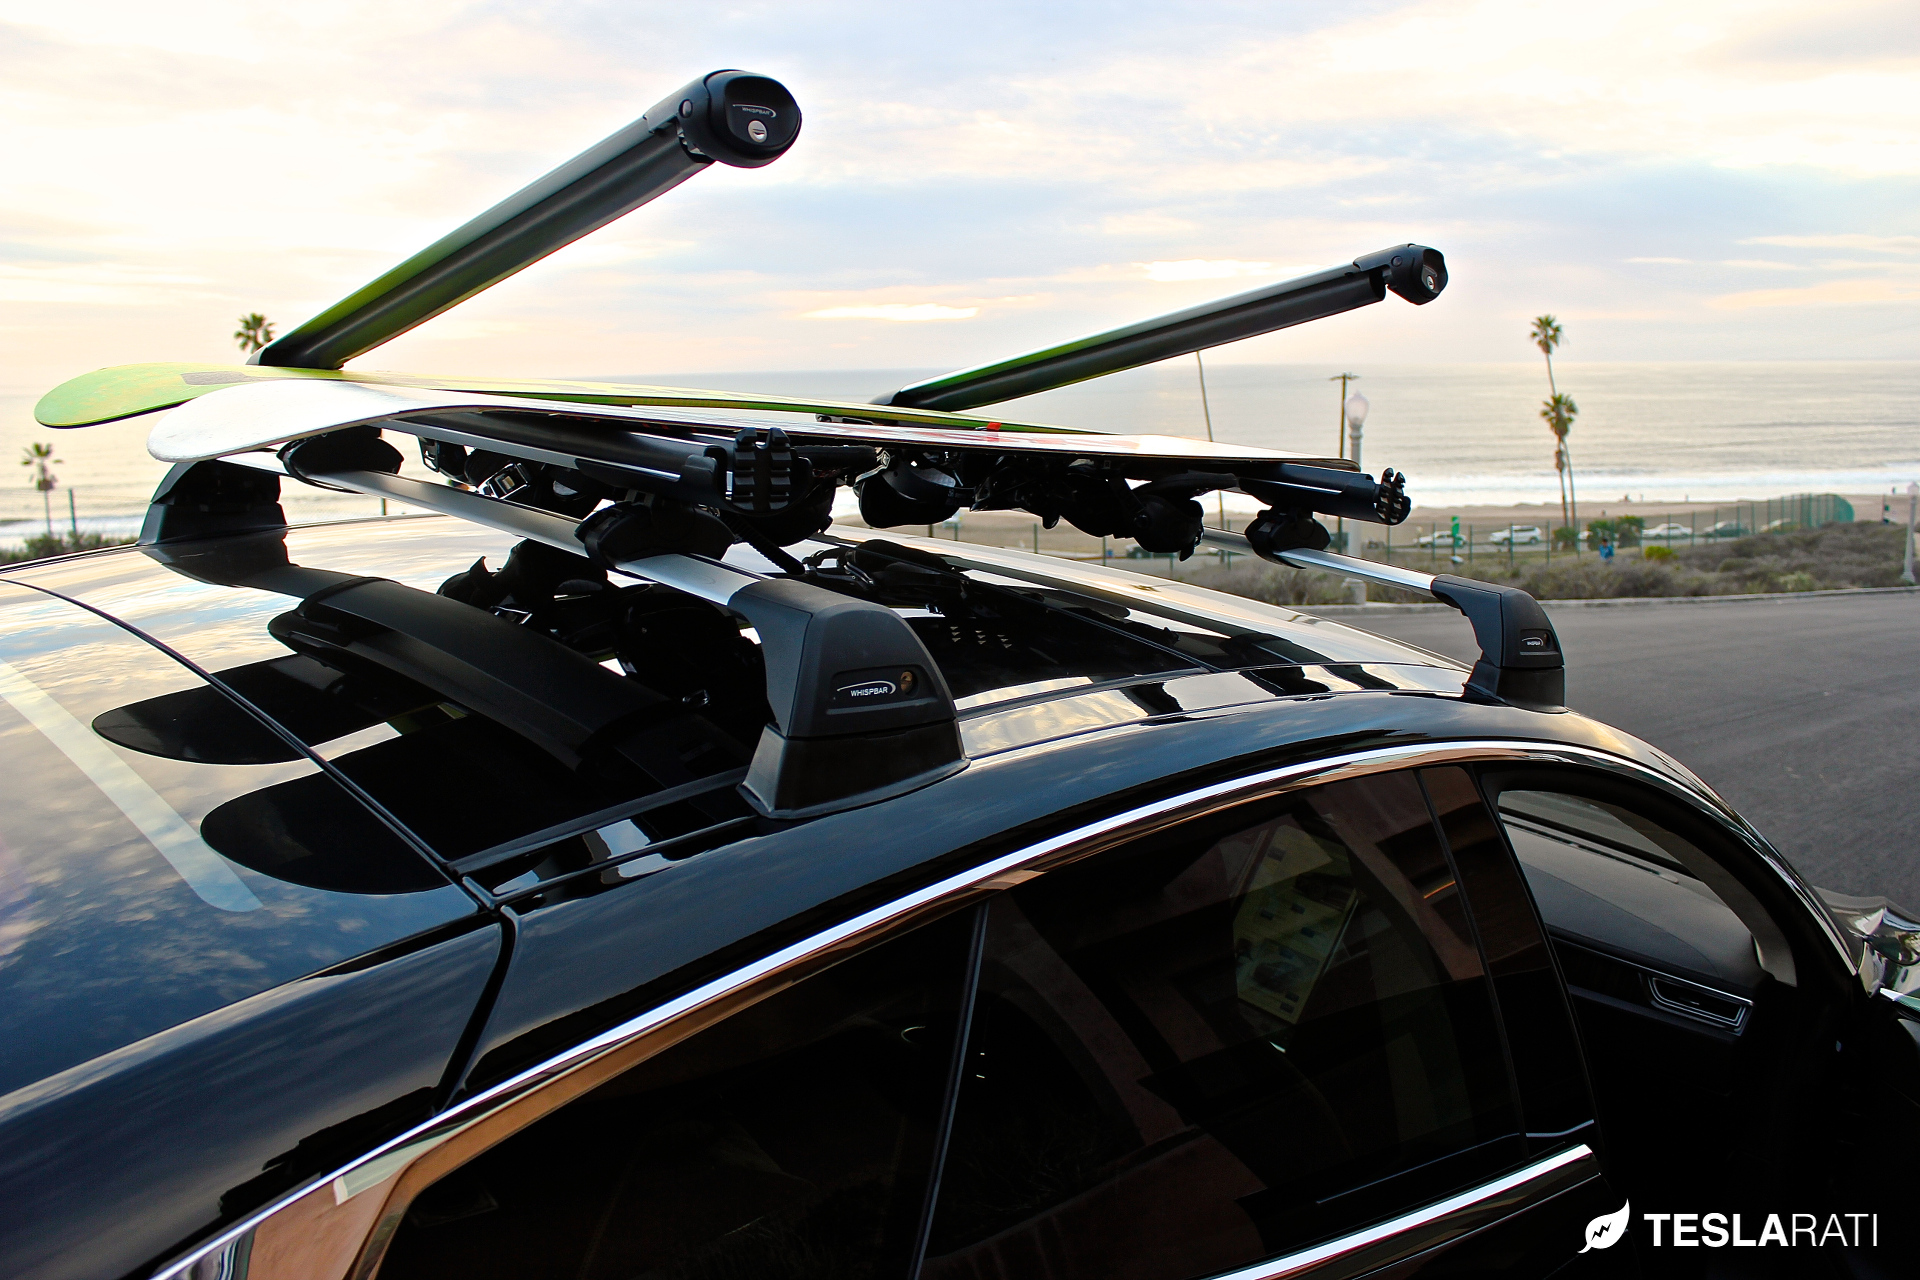 Tesla Model S Roof Rack System Whispbar Review